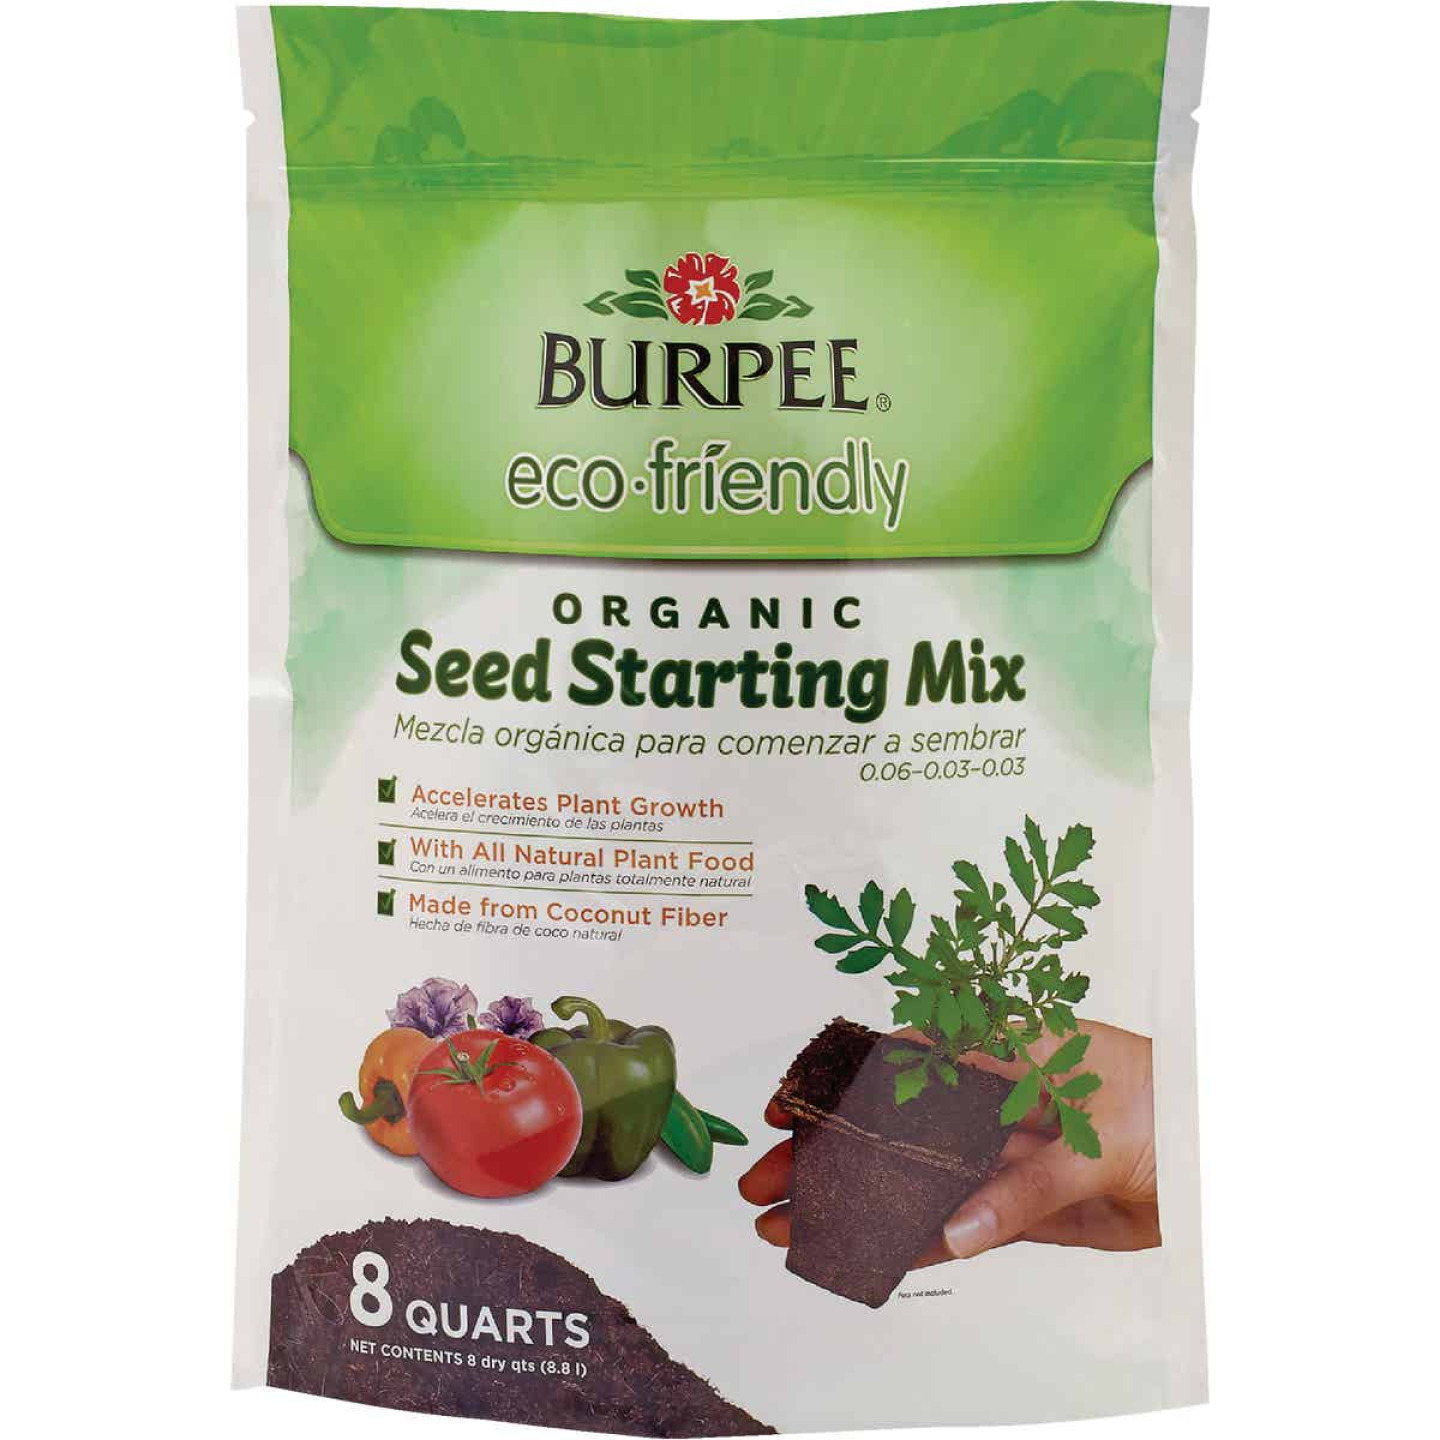 Burpee 8 Qt. 6 Lb. All Purpose Container Organic Seed Starting Mix Image 1